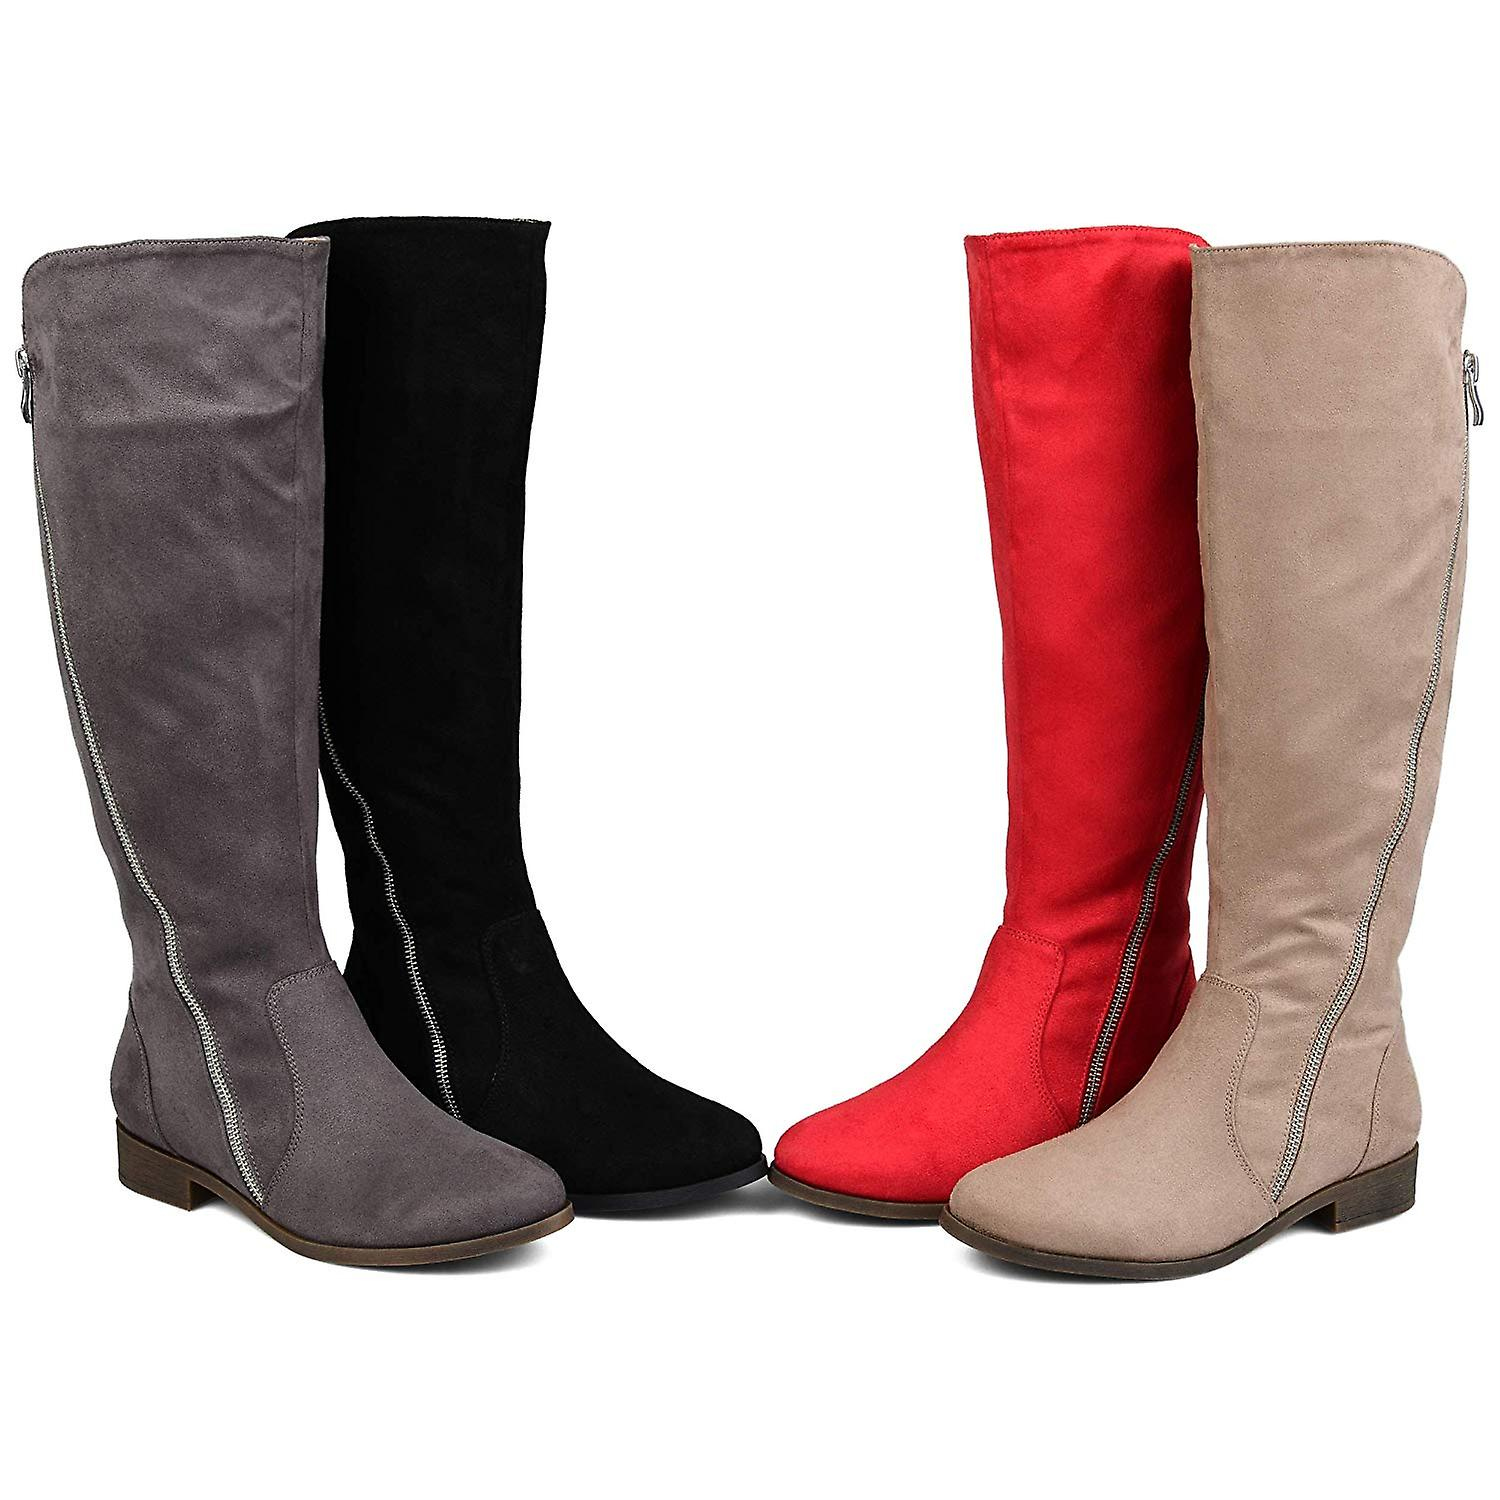 Brinley Co Comfort Womens Faux Suede Riding Boot Black, 7.5 Extra Wide Calf US